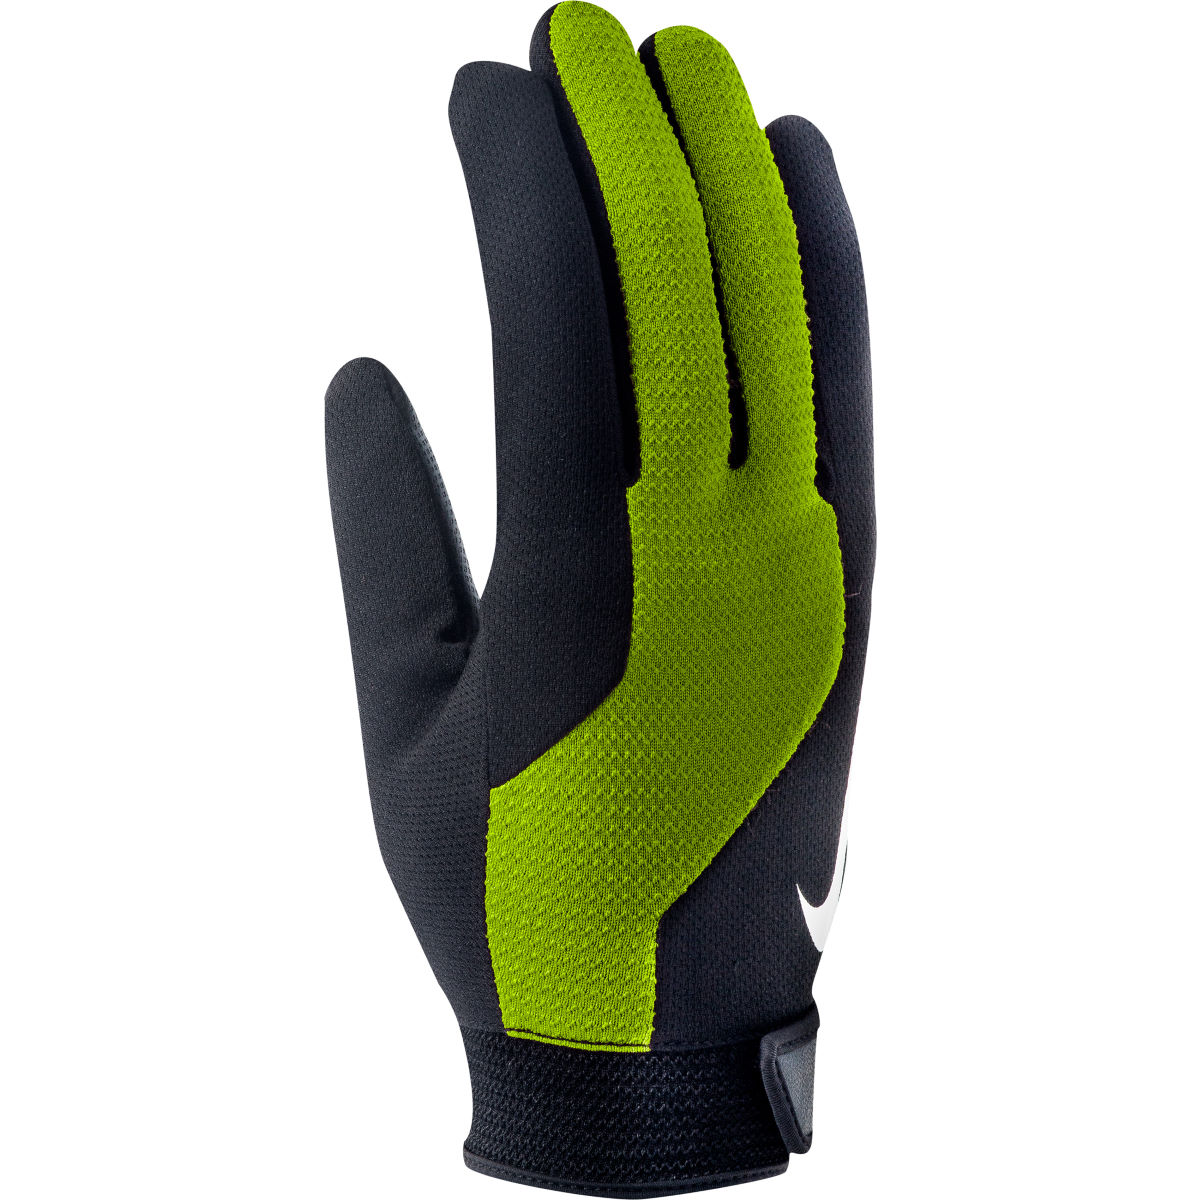 Nike Men S Destroyer Training Gloves: Shop For Cheap Men's Accessories And